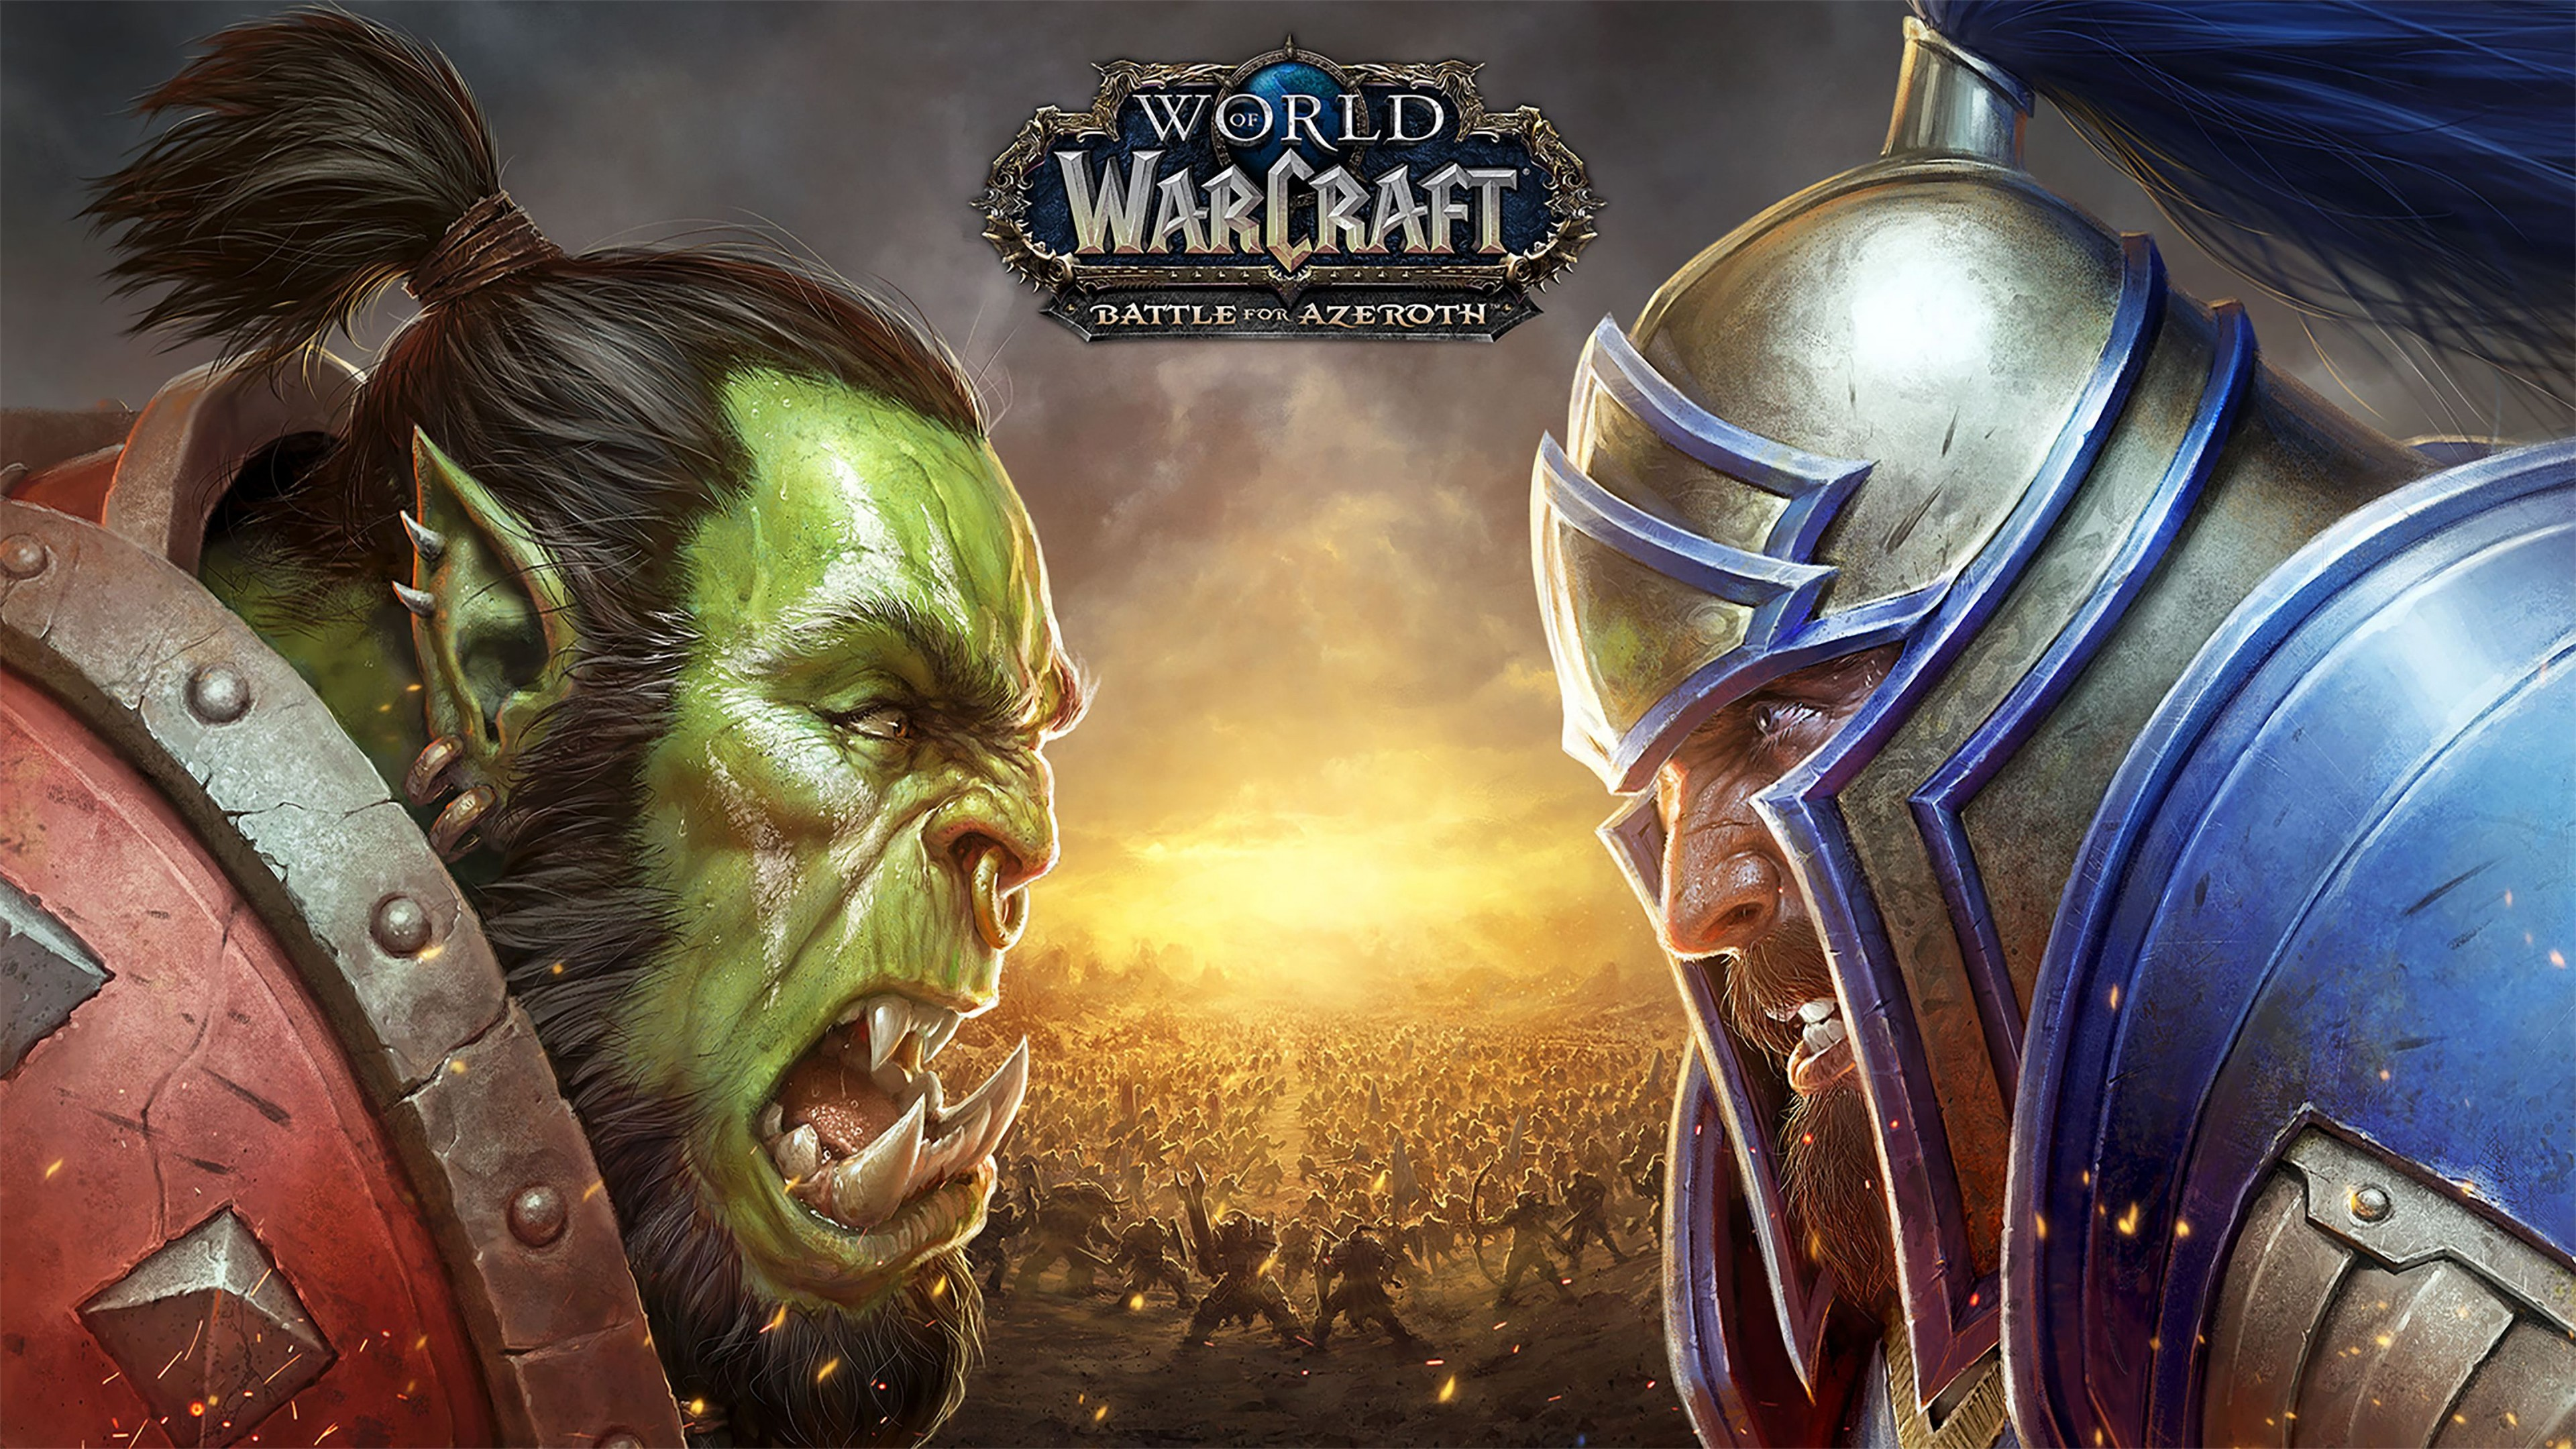 Wallpaper World Of Warcraft Battle For Azeroth Poster 4k Games